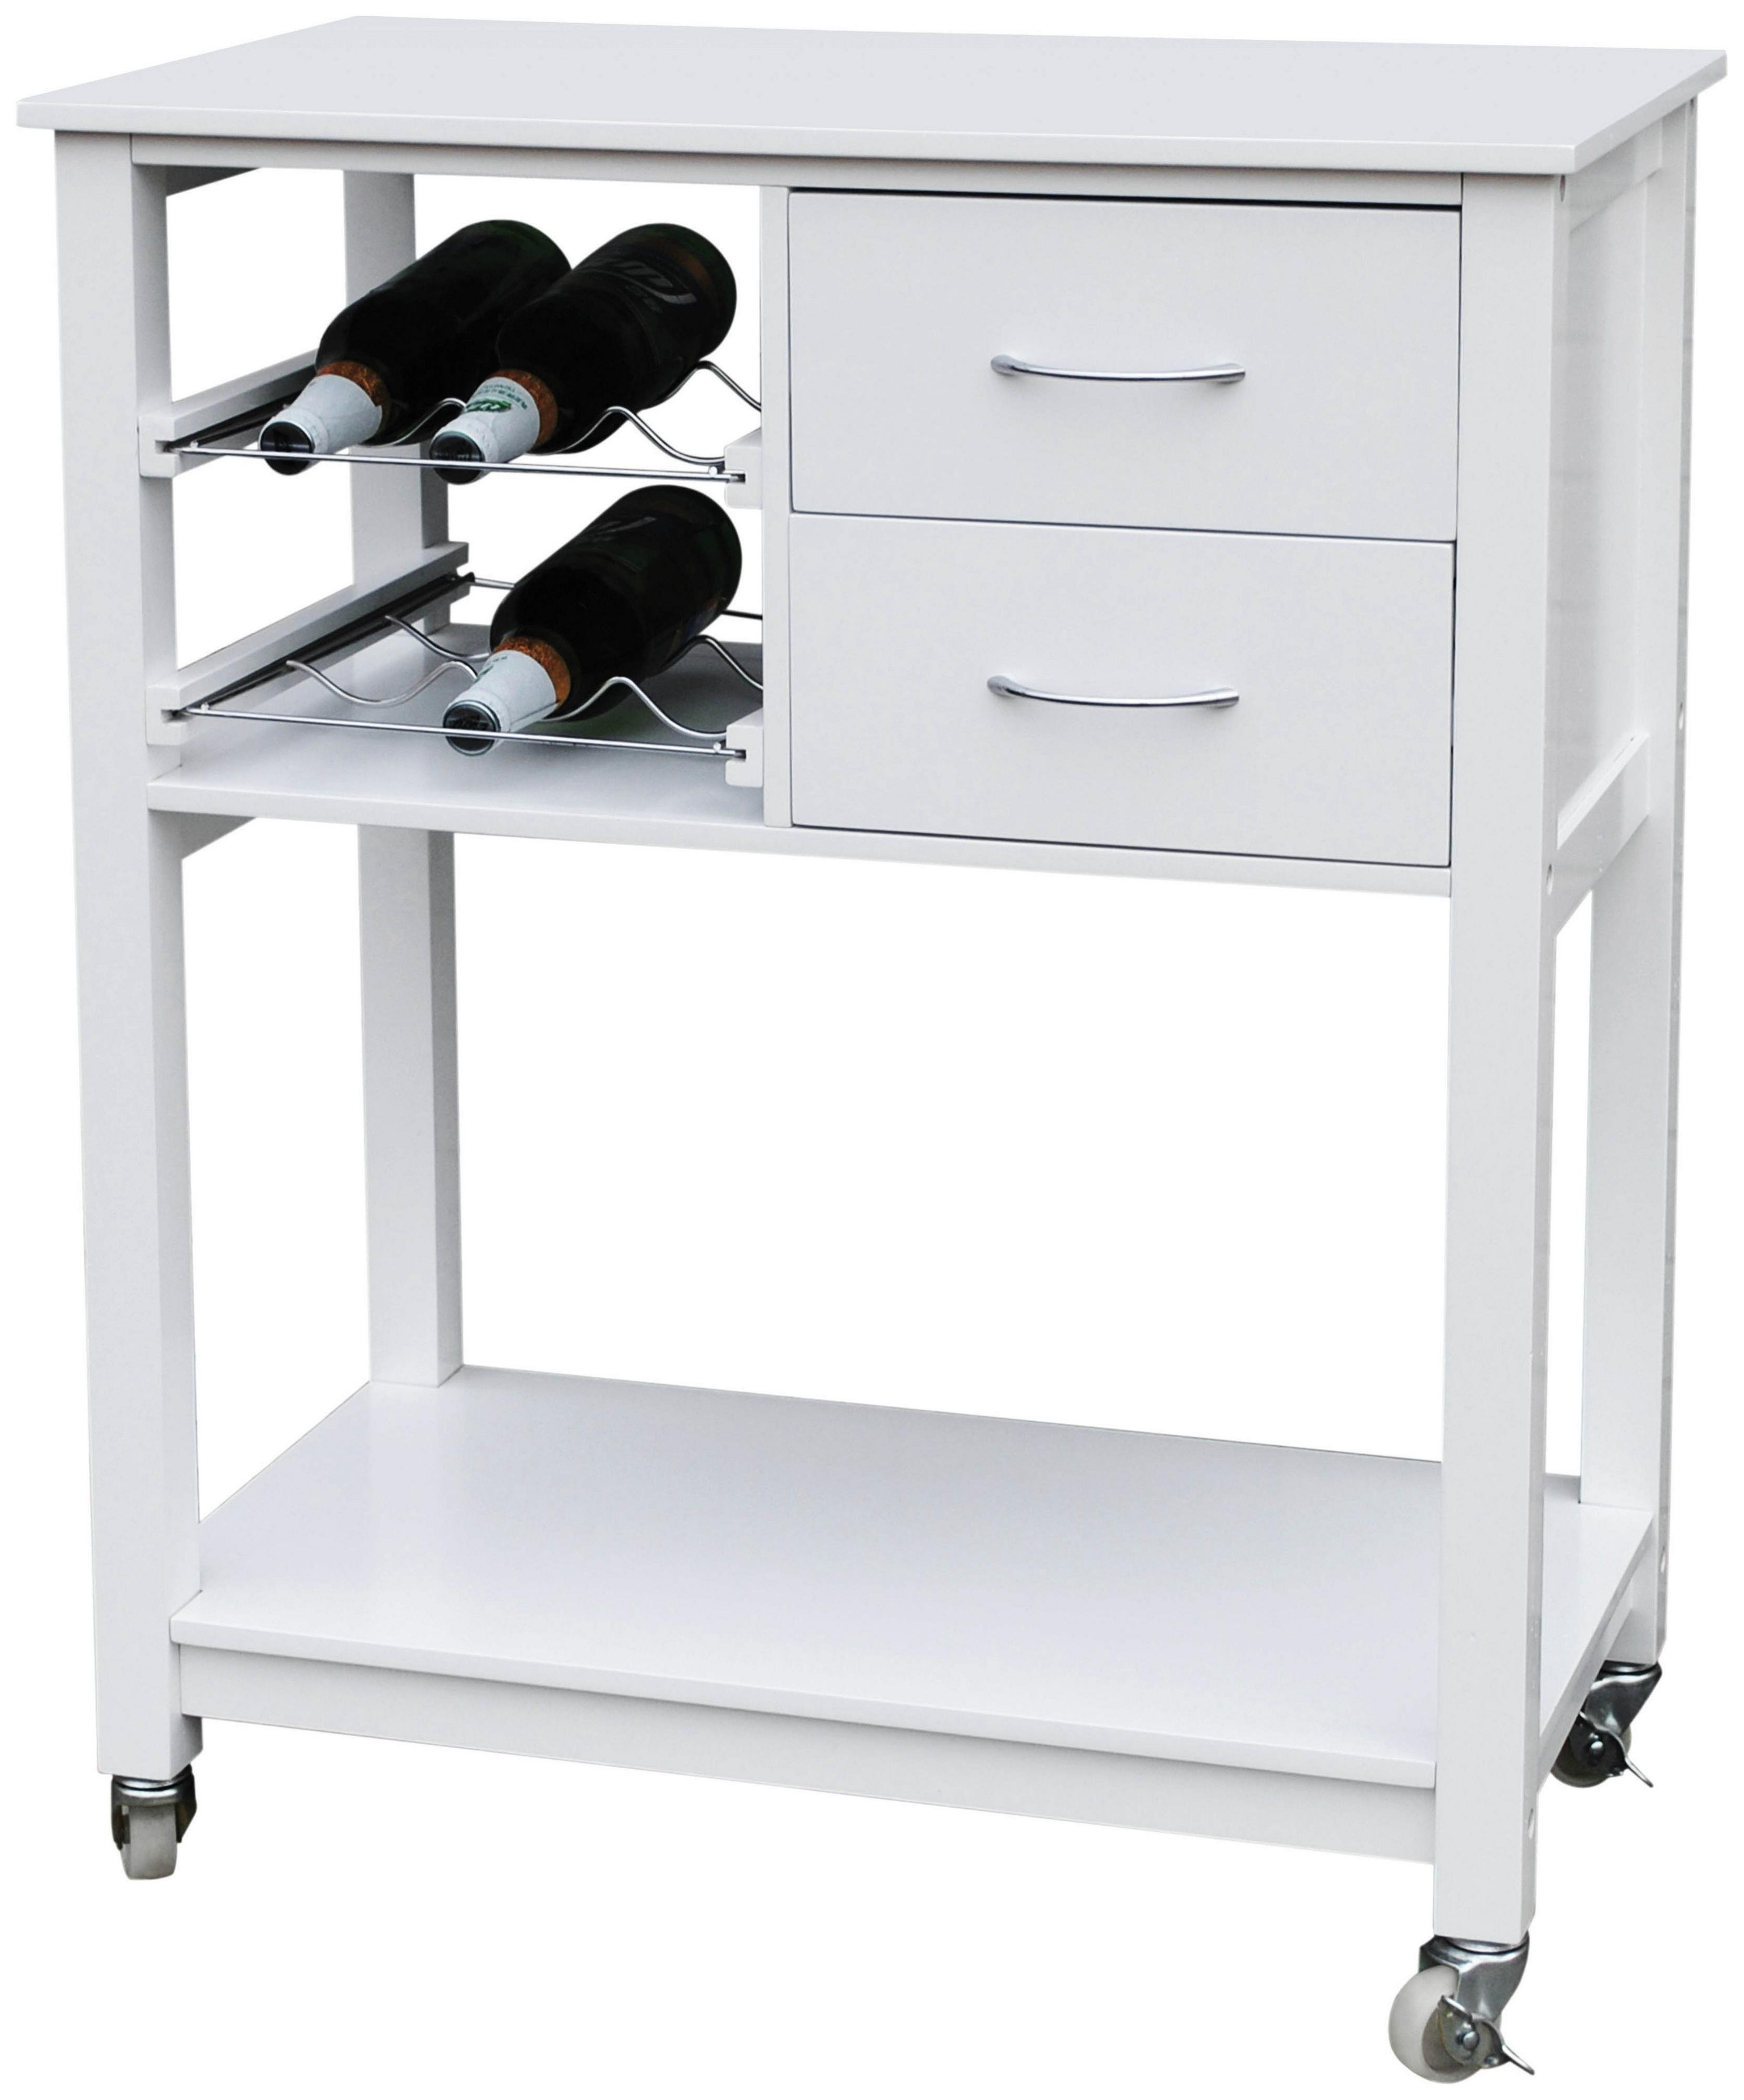 White Kitchen Trolley buy mdf pinewood top kitchen trolley - white at argos.co.uk - your